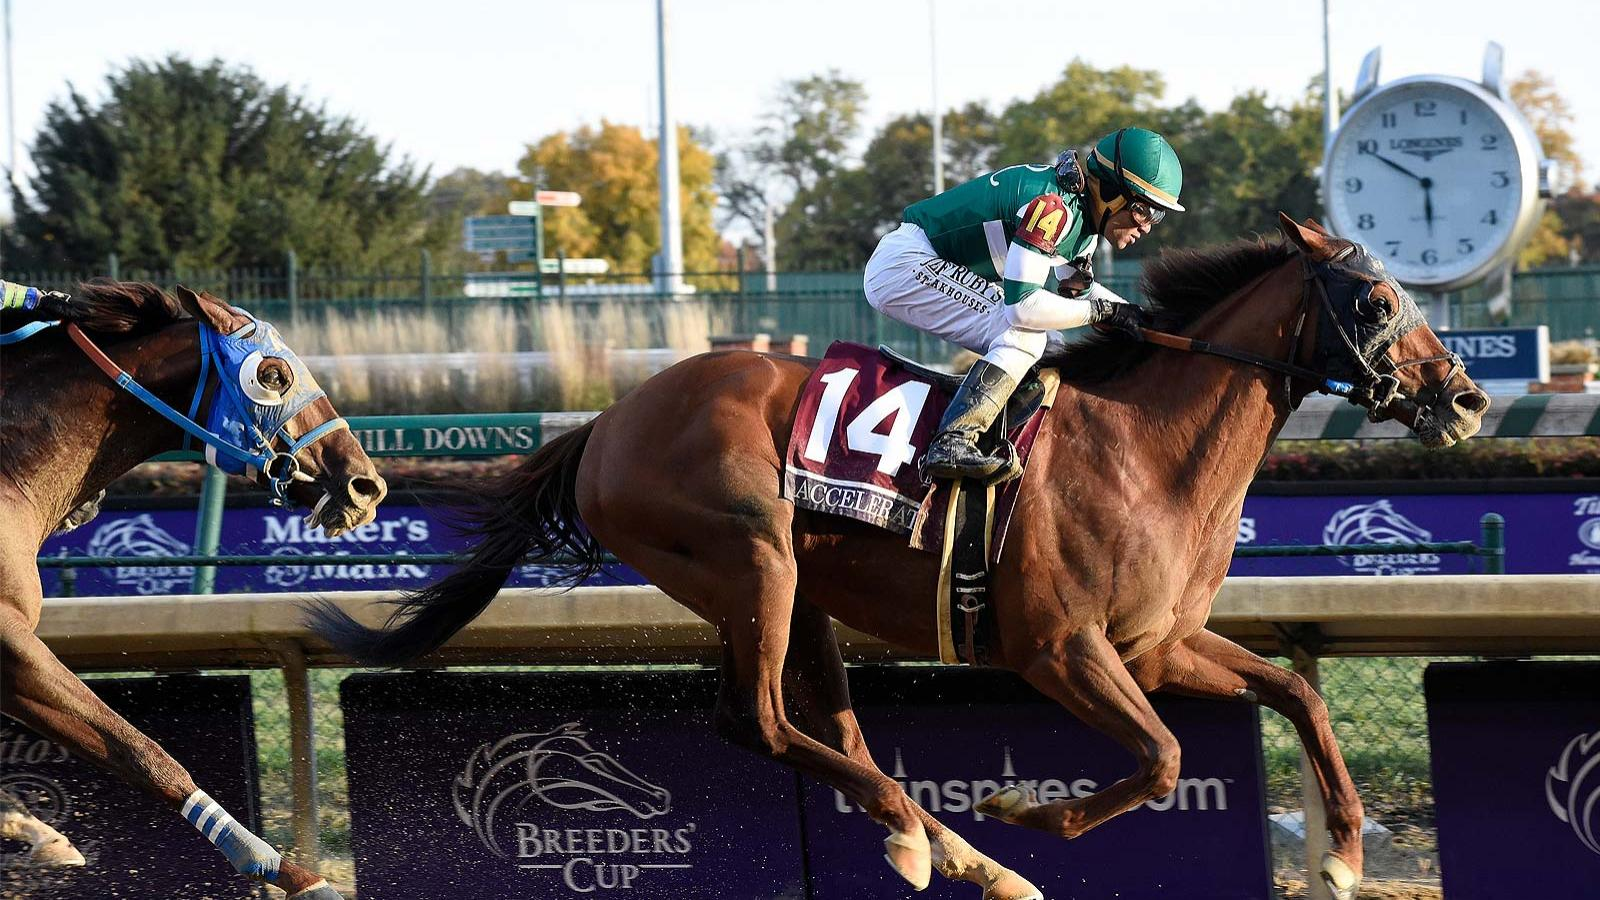 Longines; extend; partnership; Breeders' Cup